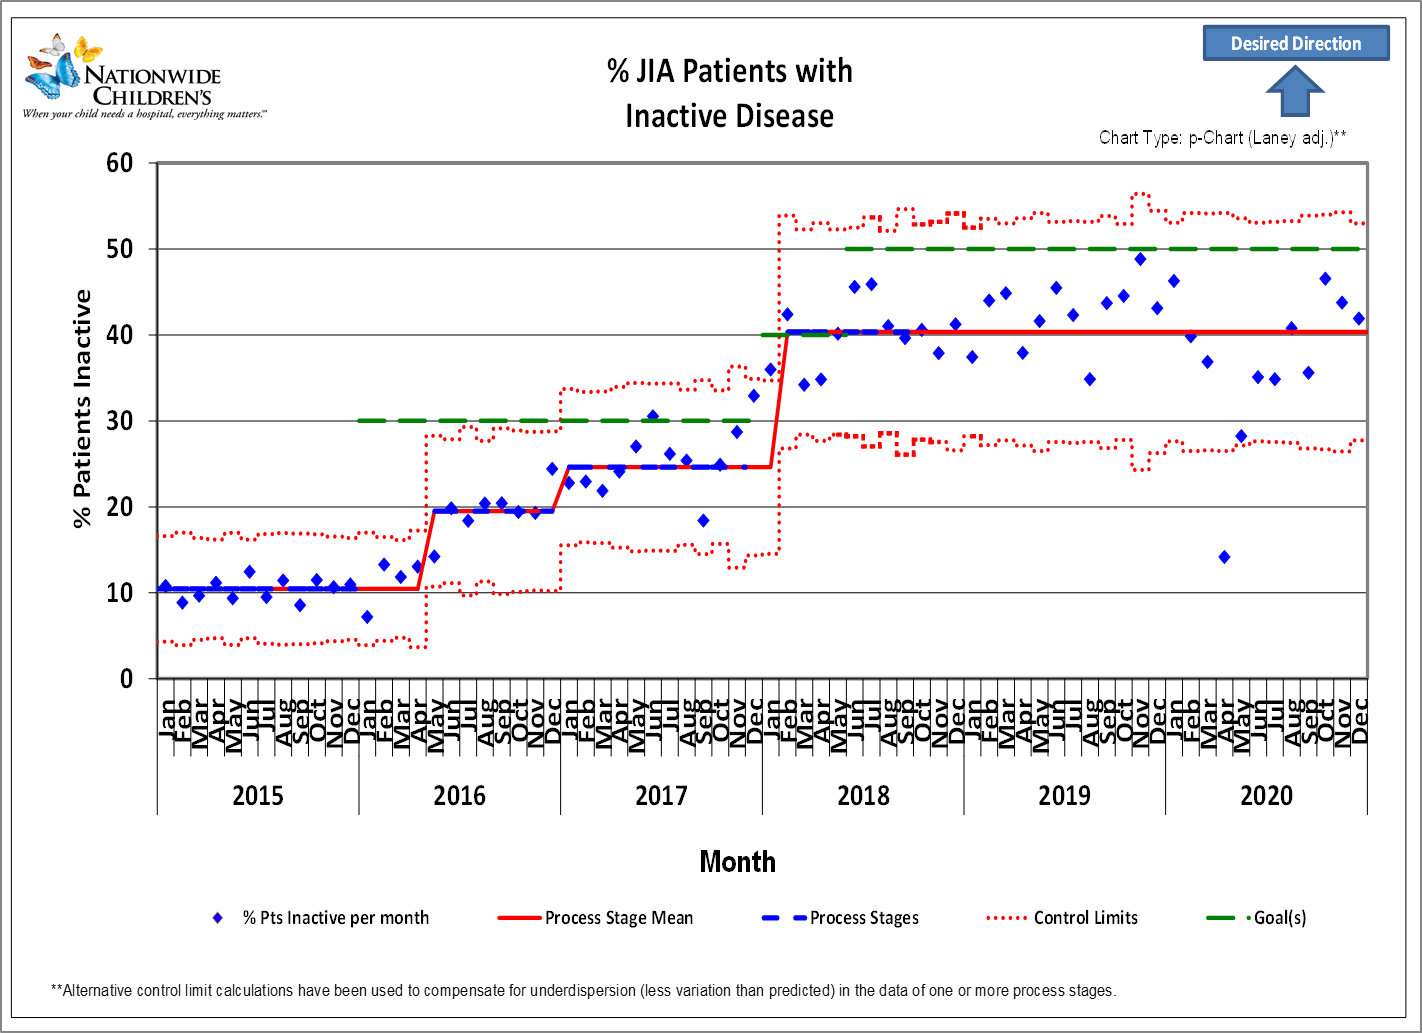 Chart depicting that the percent of JIA Patients with inactive disease has increased